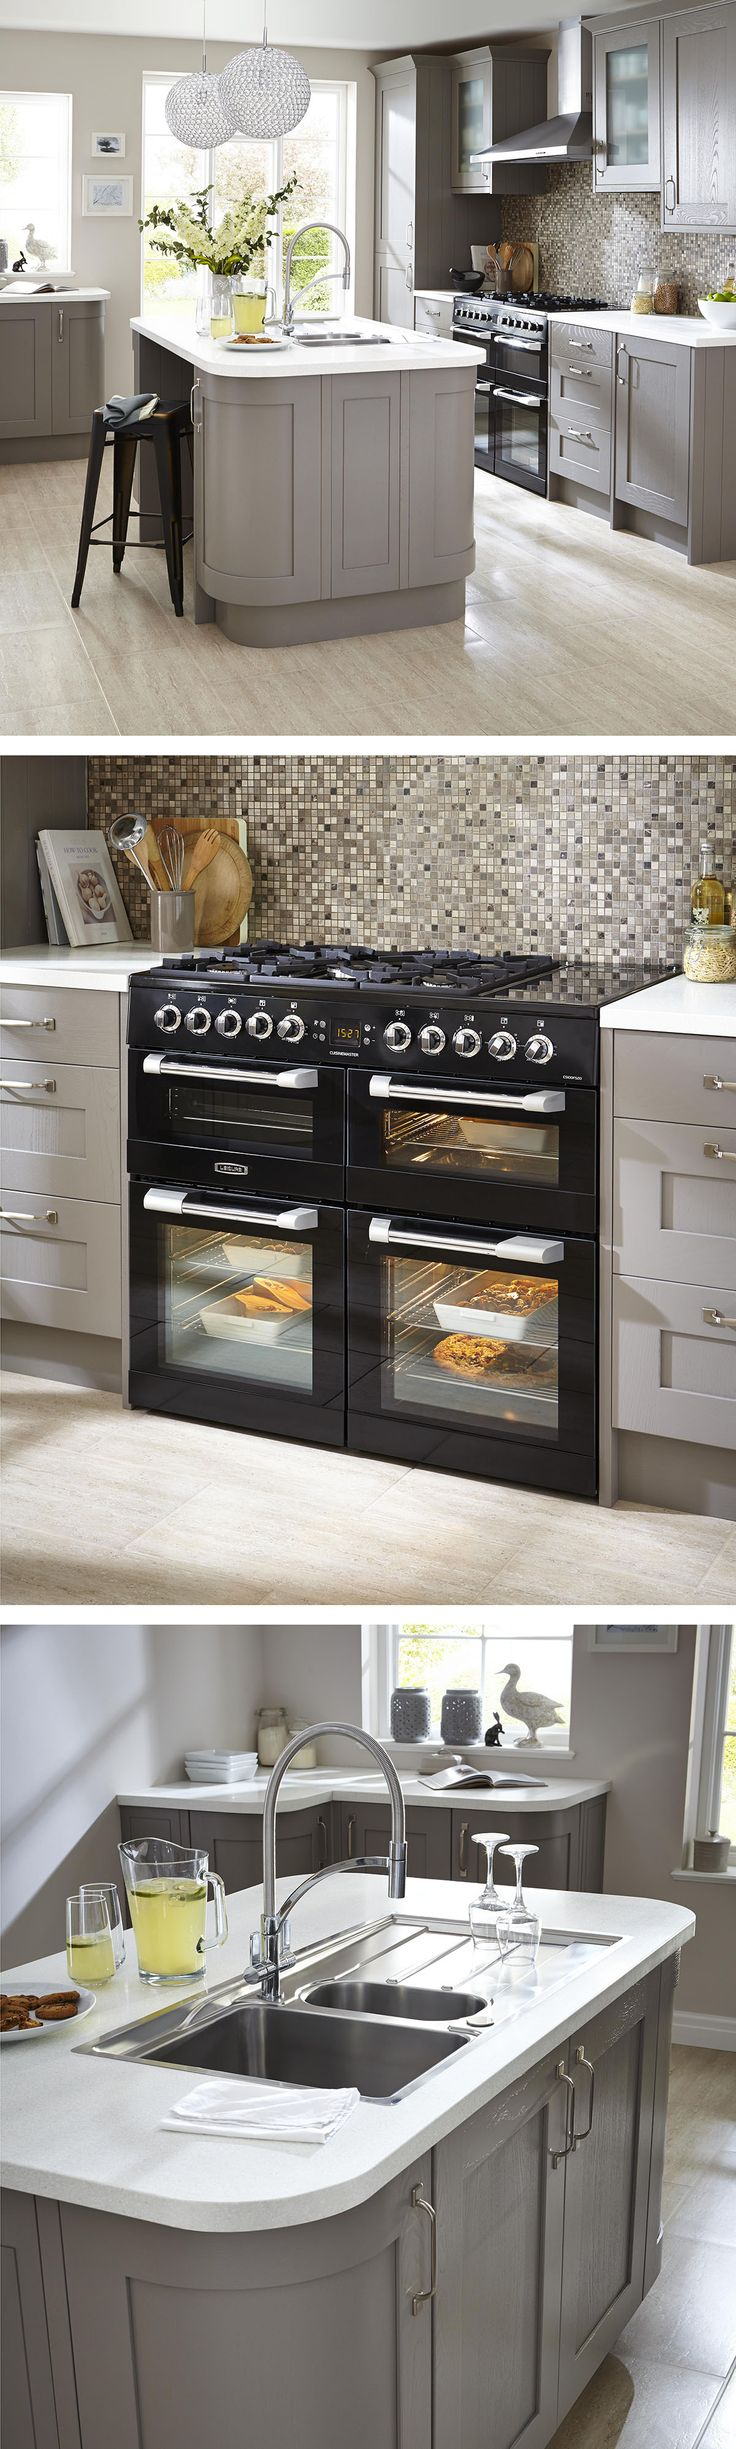 Complete your dream kitchen with a top of the range oven and sleek island with breakfast bar.  Start designing your dream Kitchen: http://po.st/BWX5ww